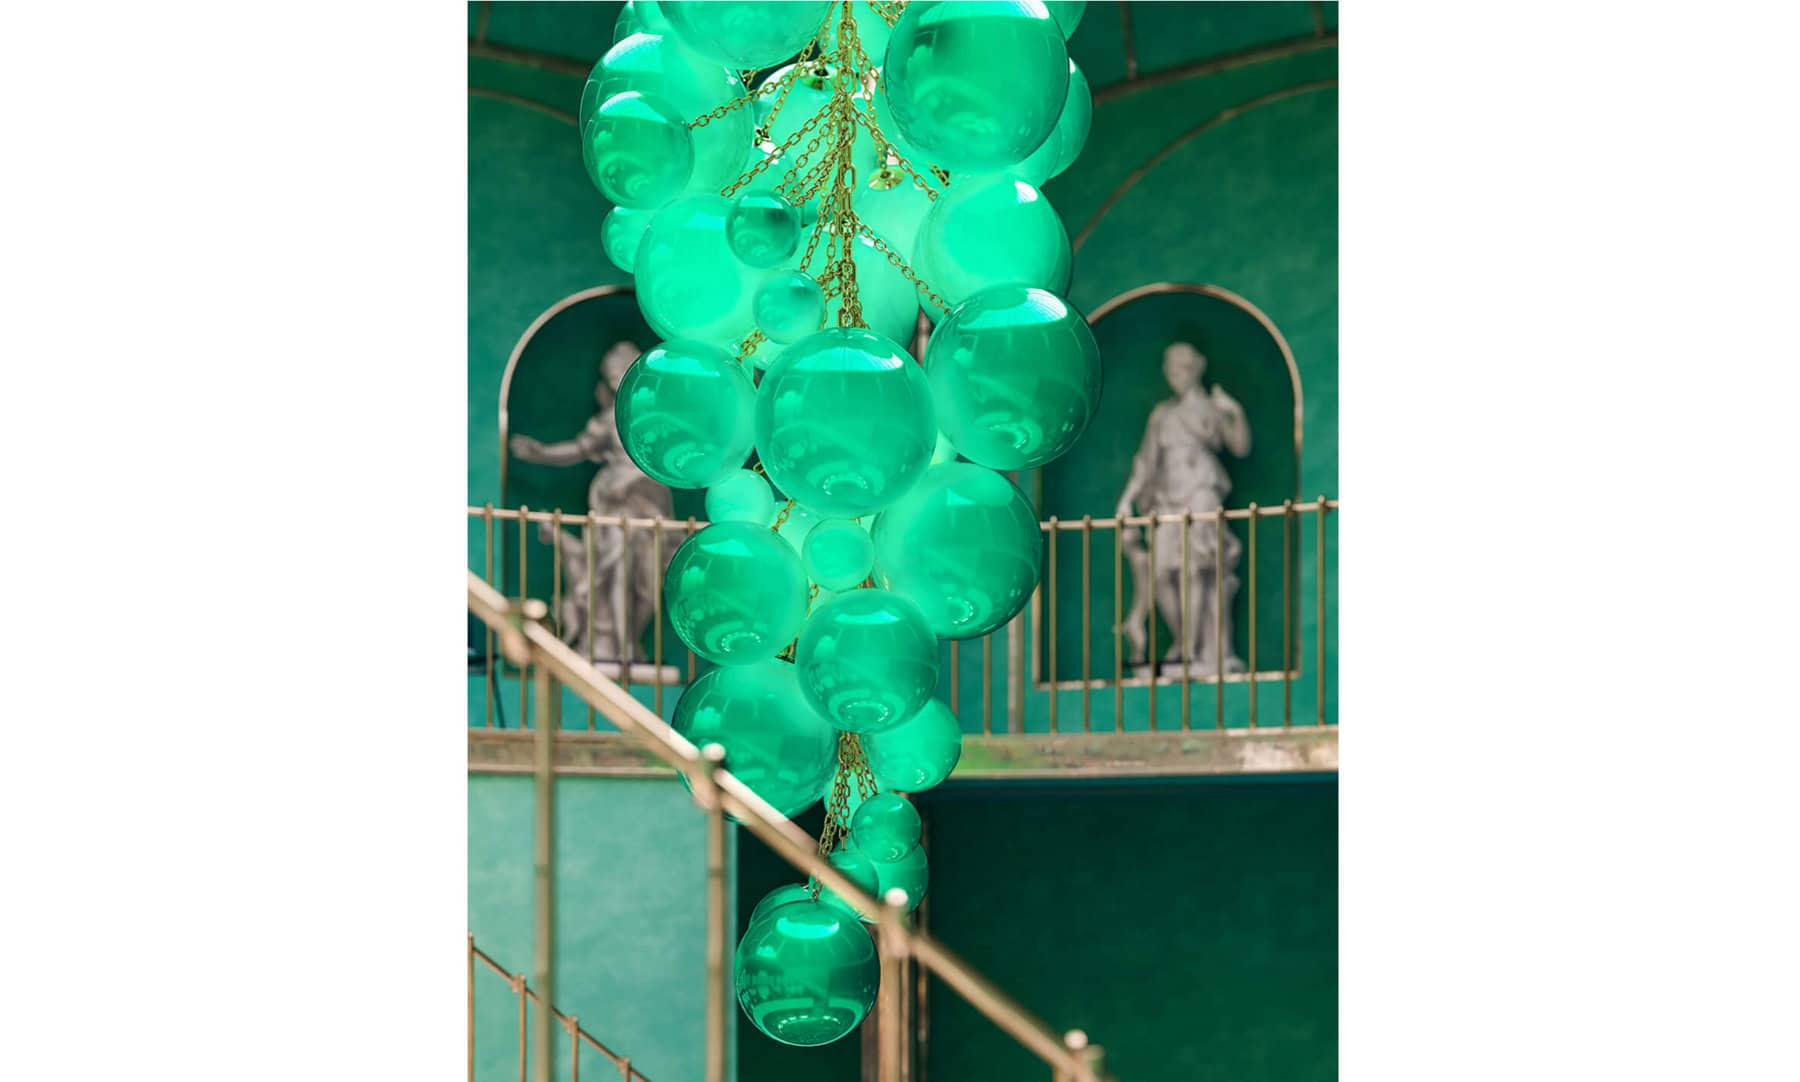 A color photo of a large, sculptural chandelier consisting of green orbs in various sizes, hanging in a green hall with light grey stone statues in the background.